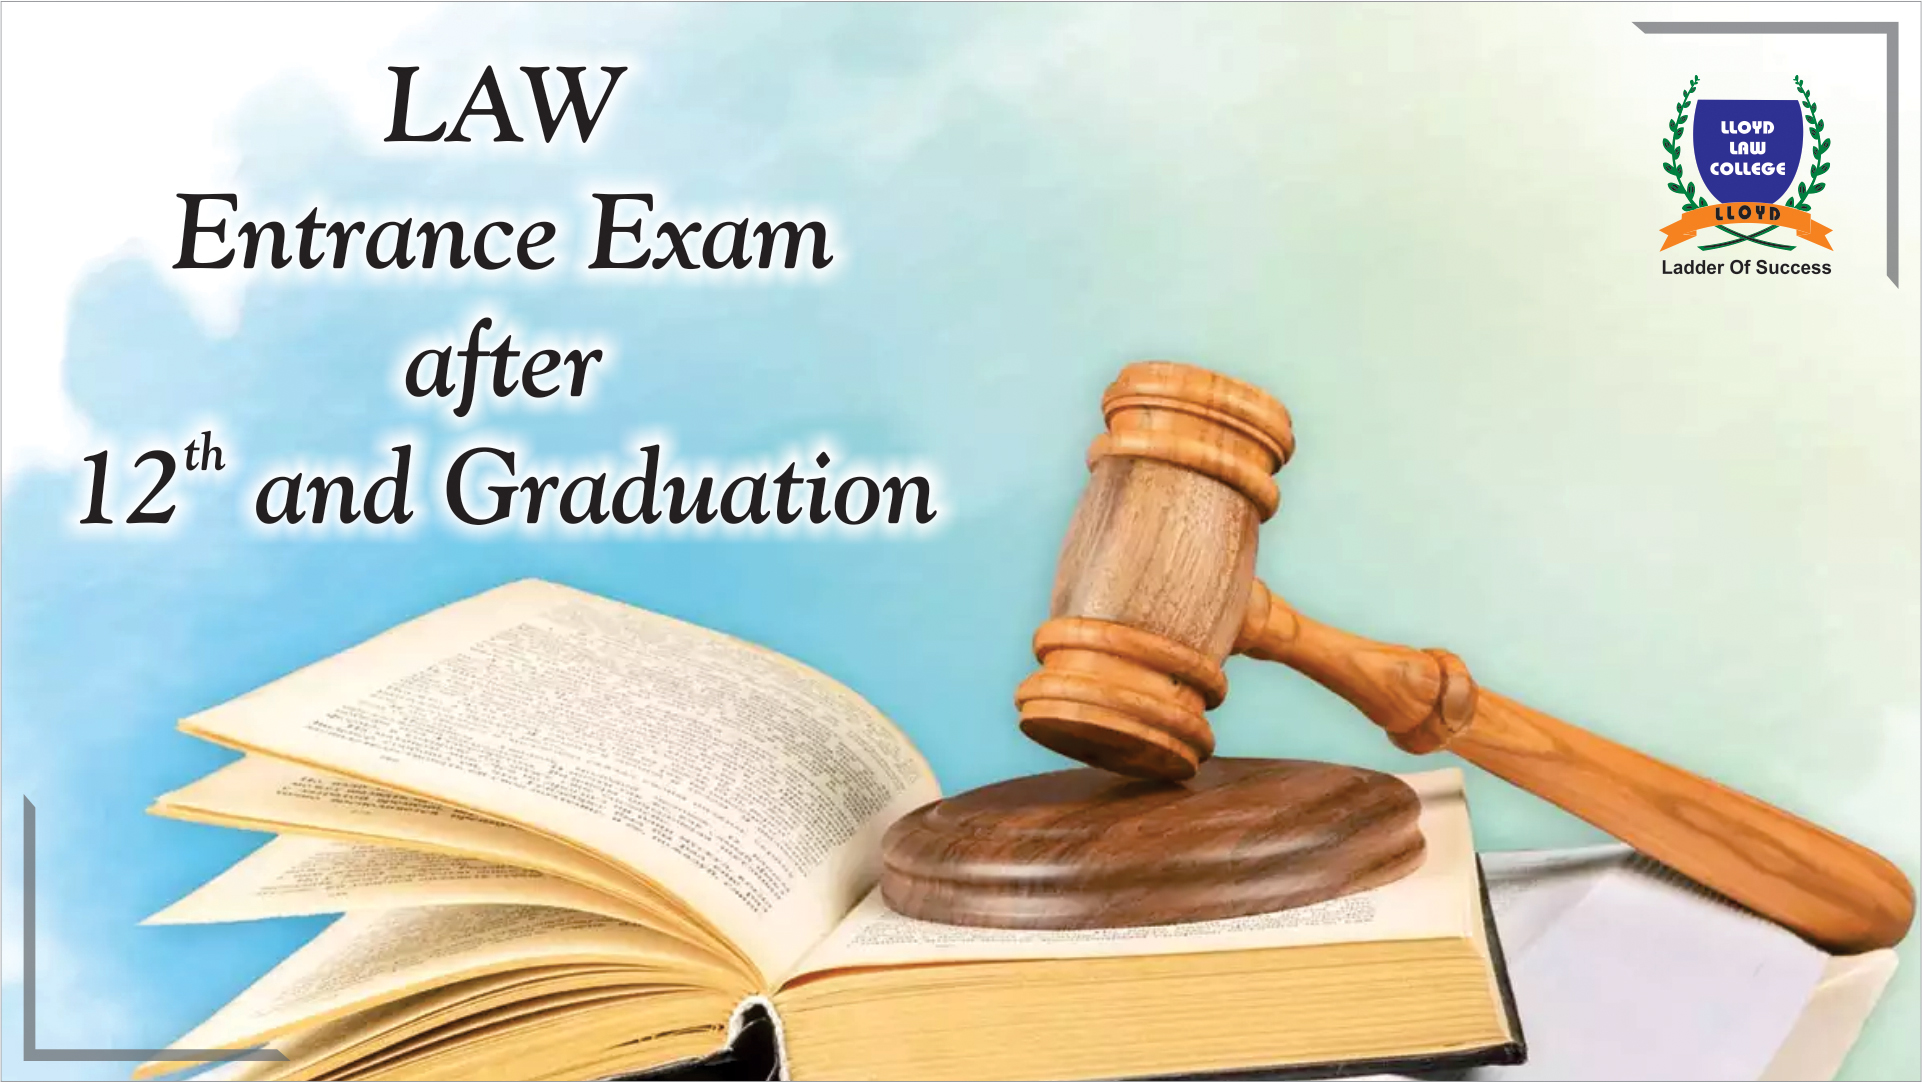 Which subject will be the best for LLM course